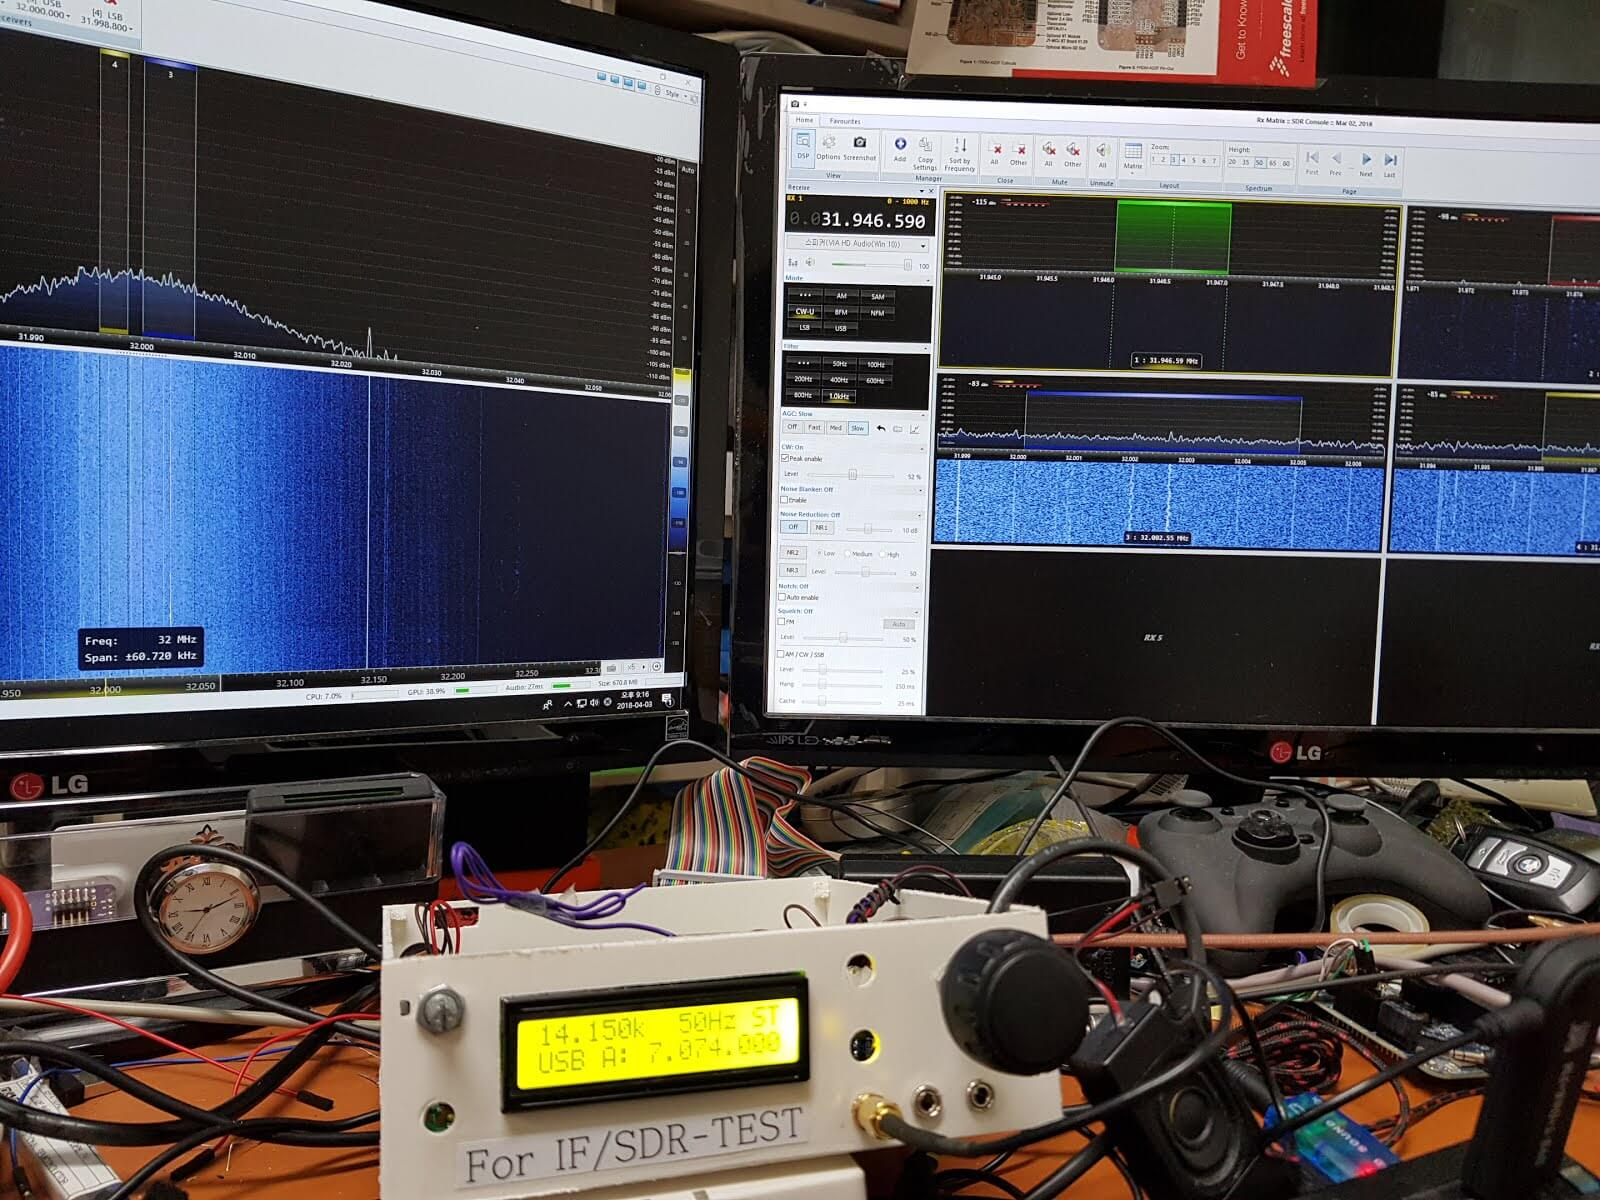 Connecting an RTL-SDR Panadapter to a uBITX Transceiver